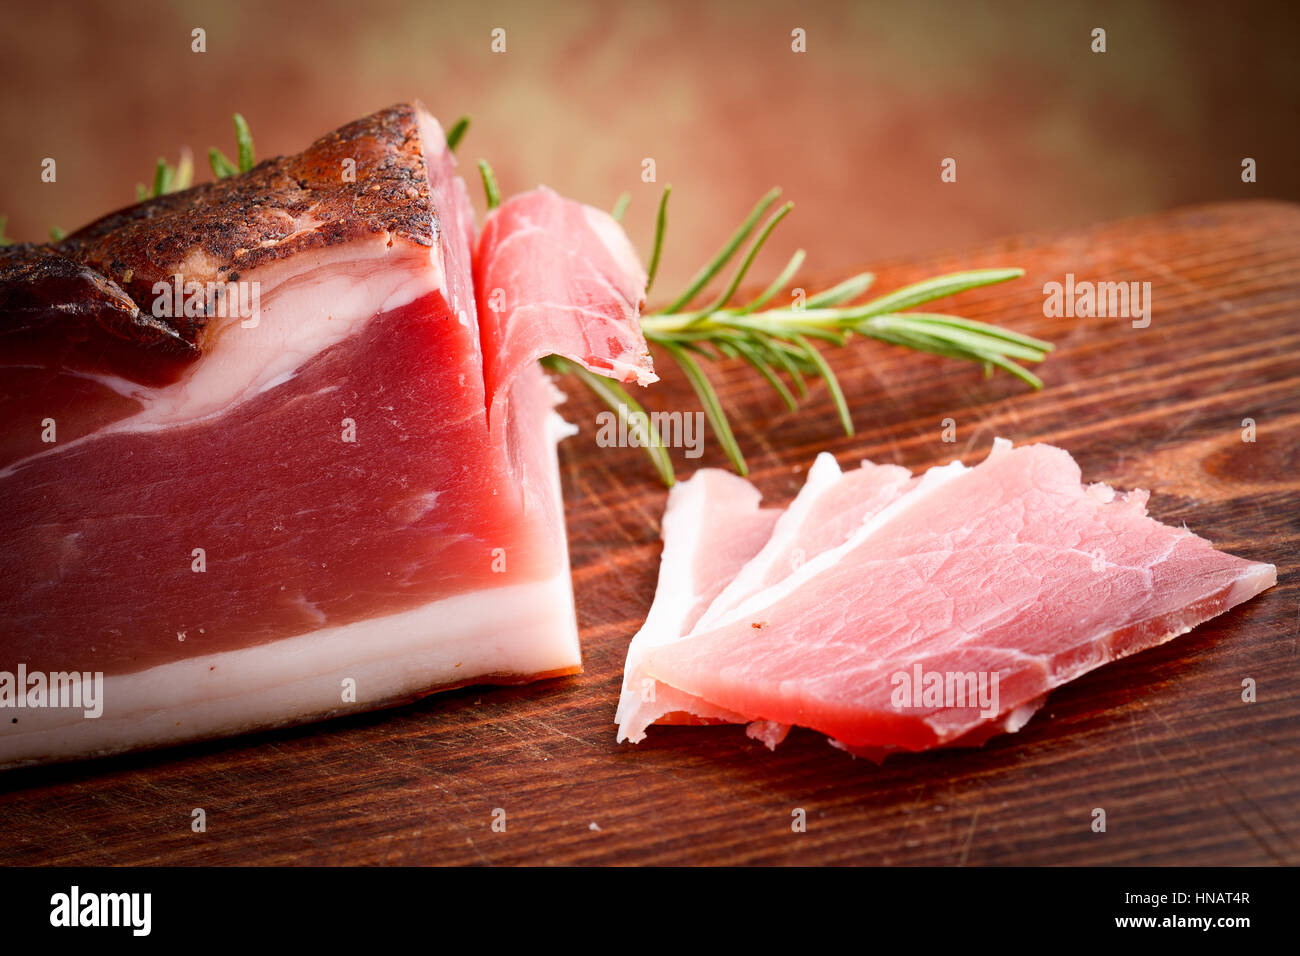 italian speck prosciutto on wooden chopping board - italian food - Stock Image